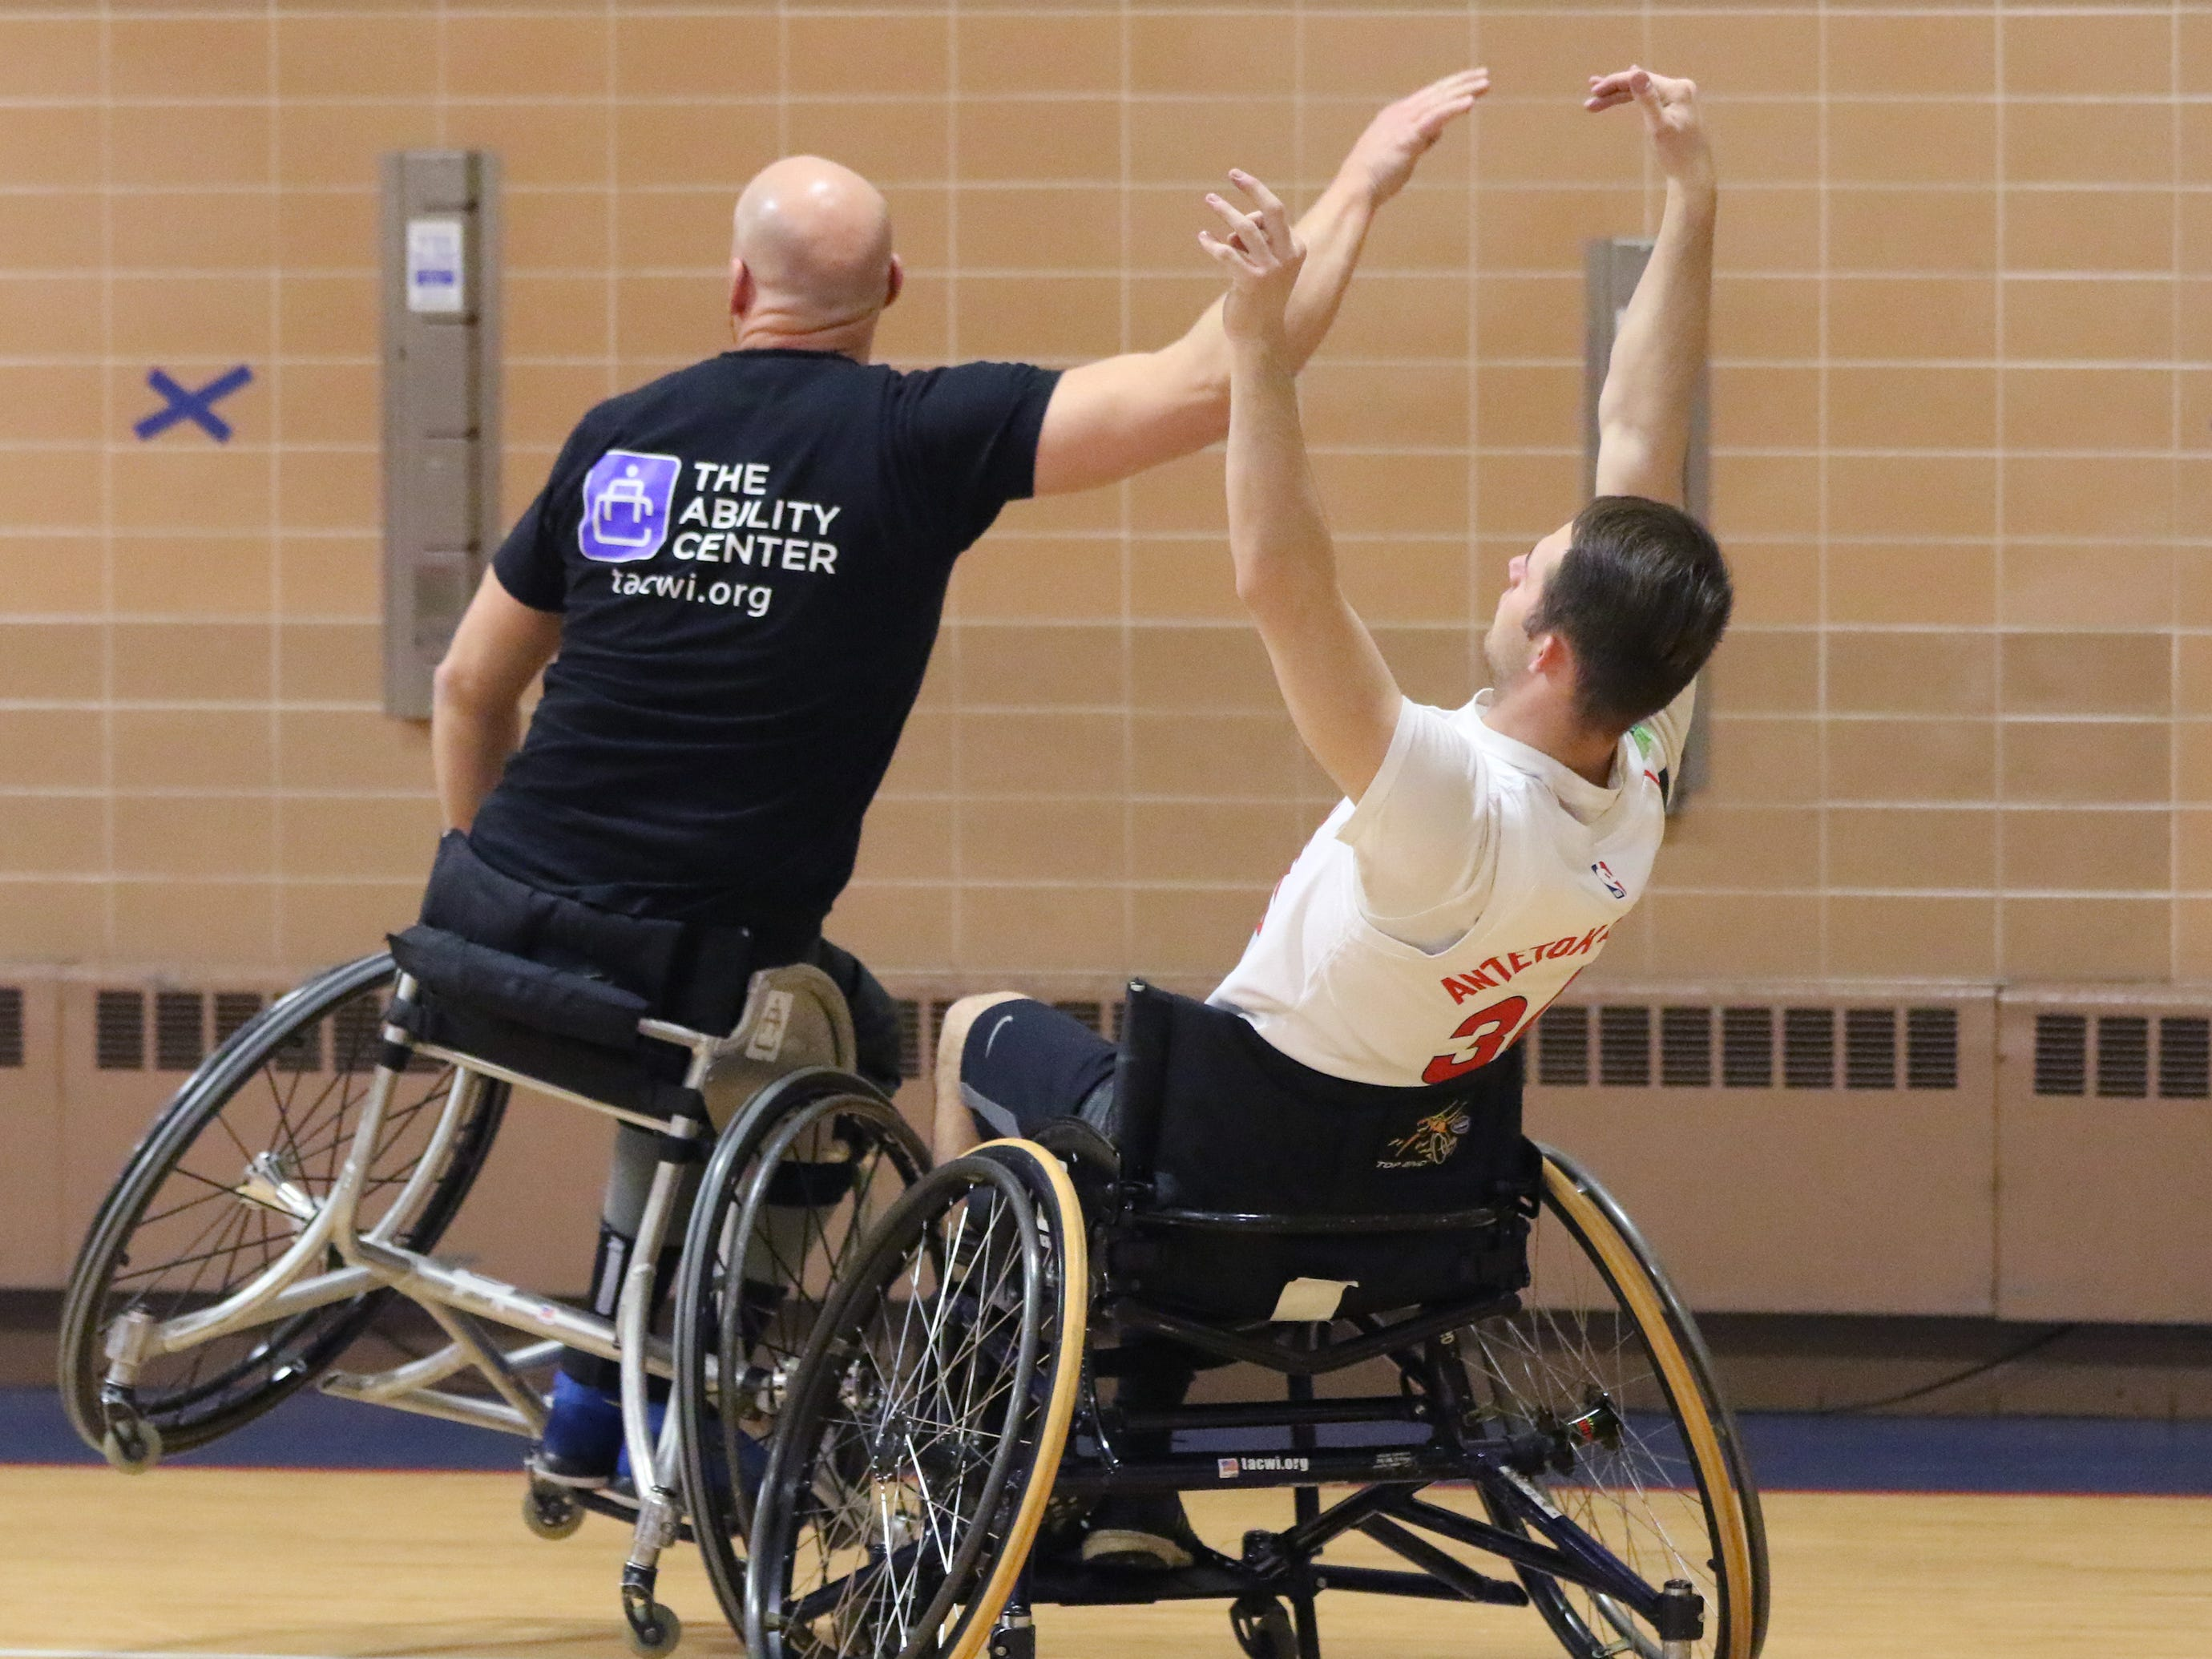 "Damian Buchman (left) blocks a pass to Mathew ""Turbo"" Turczyn while playing in the 3 vs. 3: Adult Wheelchair Basketball League with able bodied and mobility limited players at Jefferson Elementary School in Wauwatosa on Jan. 24."